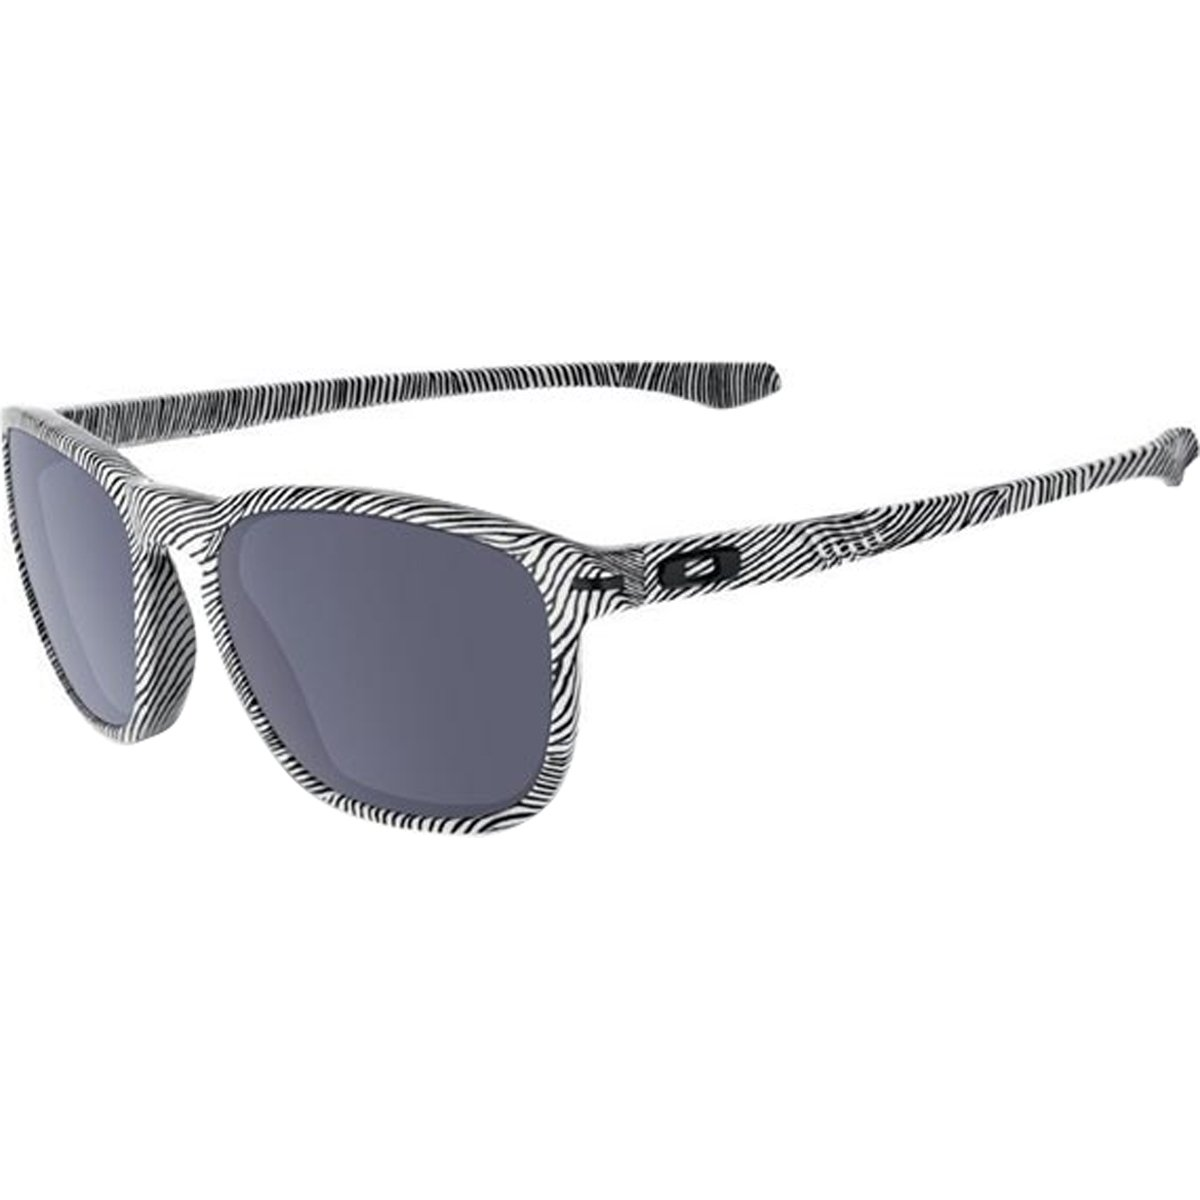 Oakley Men's OO9223 Enduro Oval Sunglasses, Fingerprint White/Grey, 55 mm by Oakley